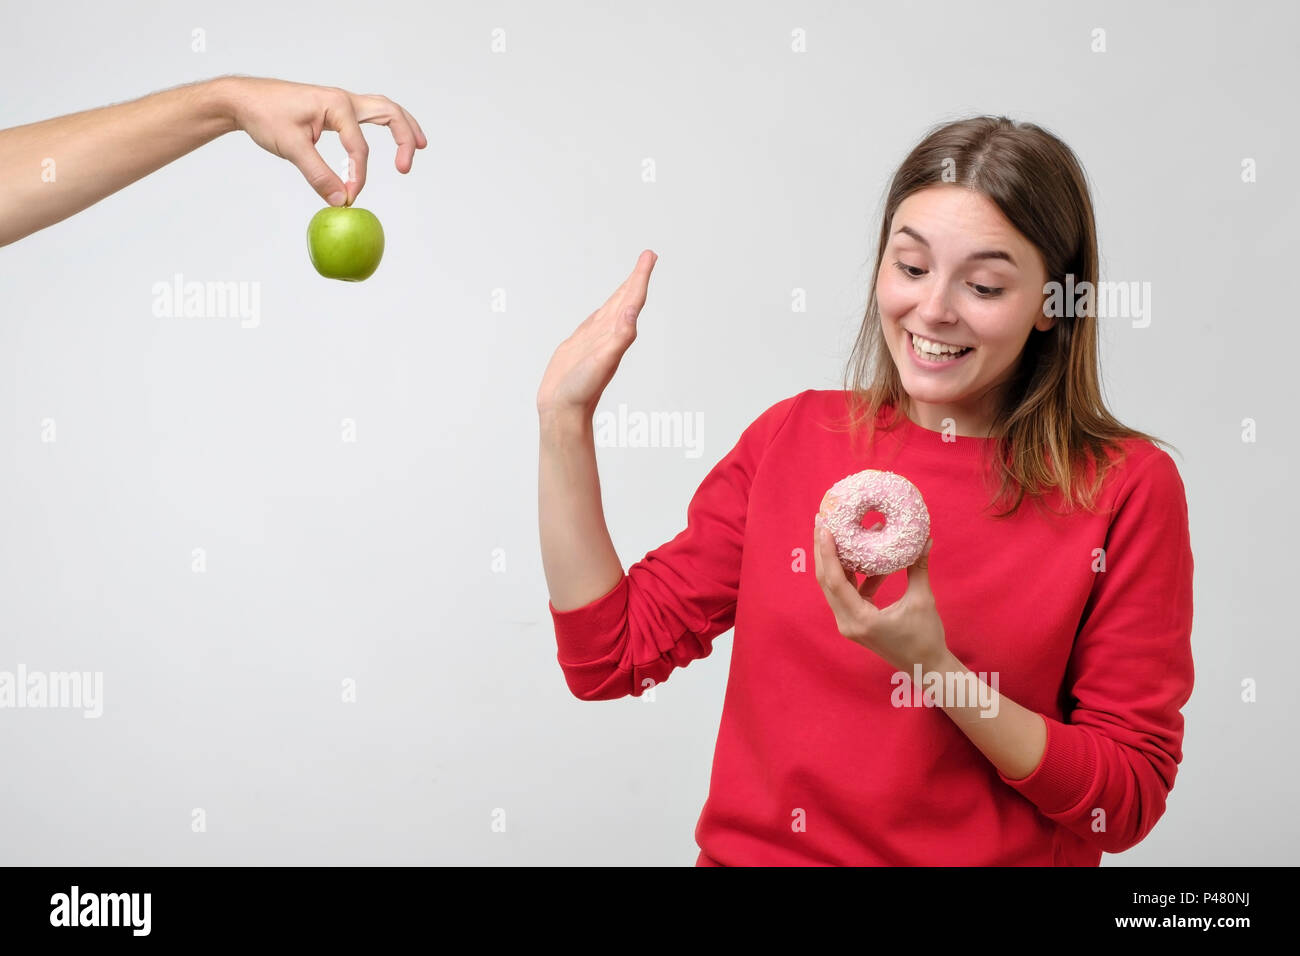 Healthy food and diet concept. Beautiful young woman choosing between fruits and sweets. She prefer a pink donut instead of green apple - Stock Photo